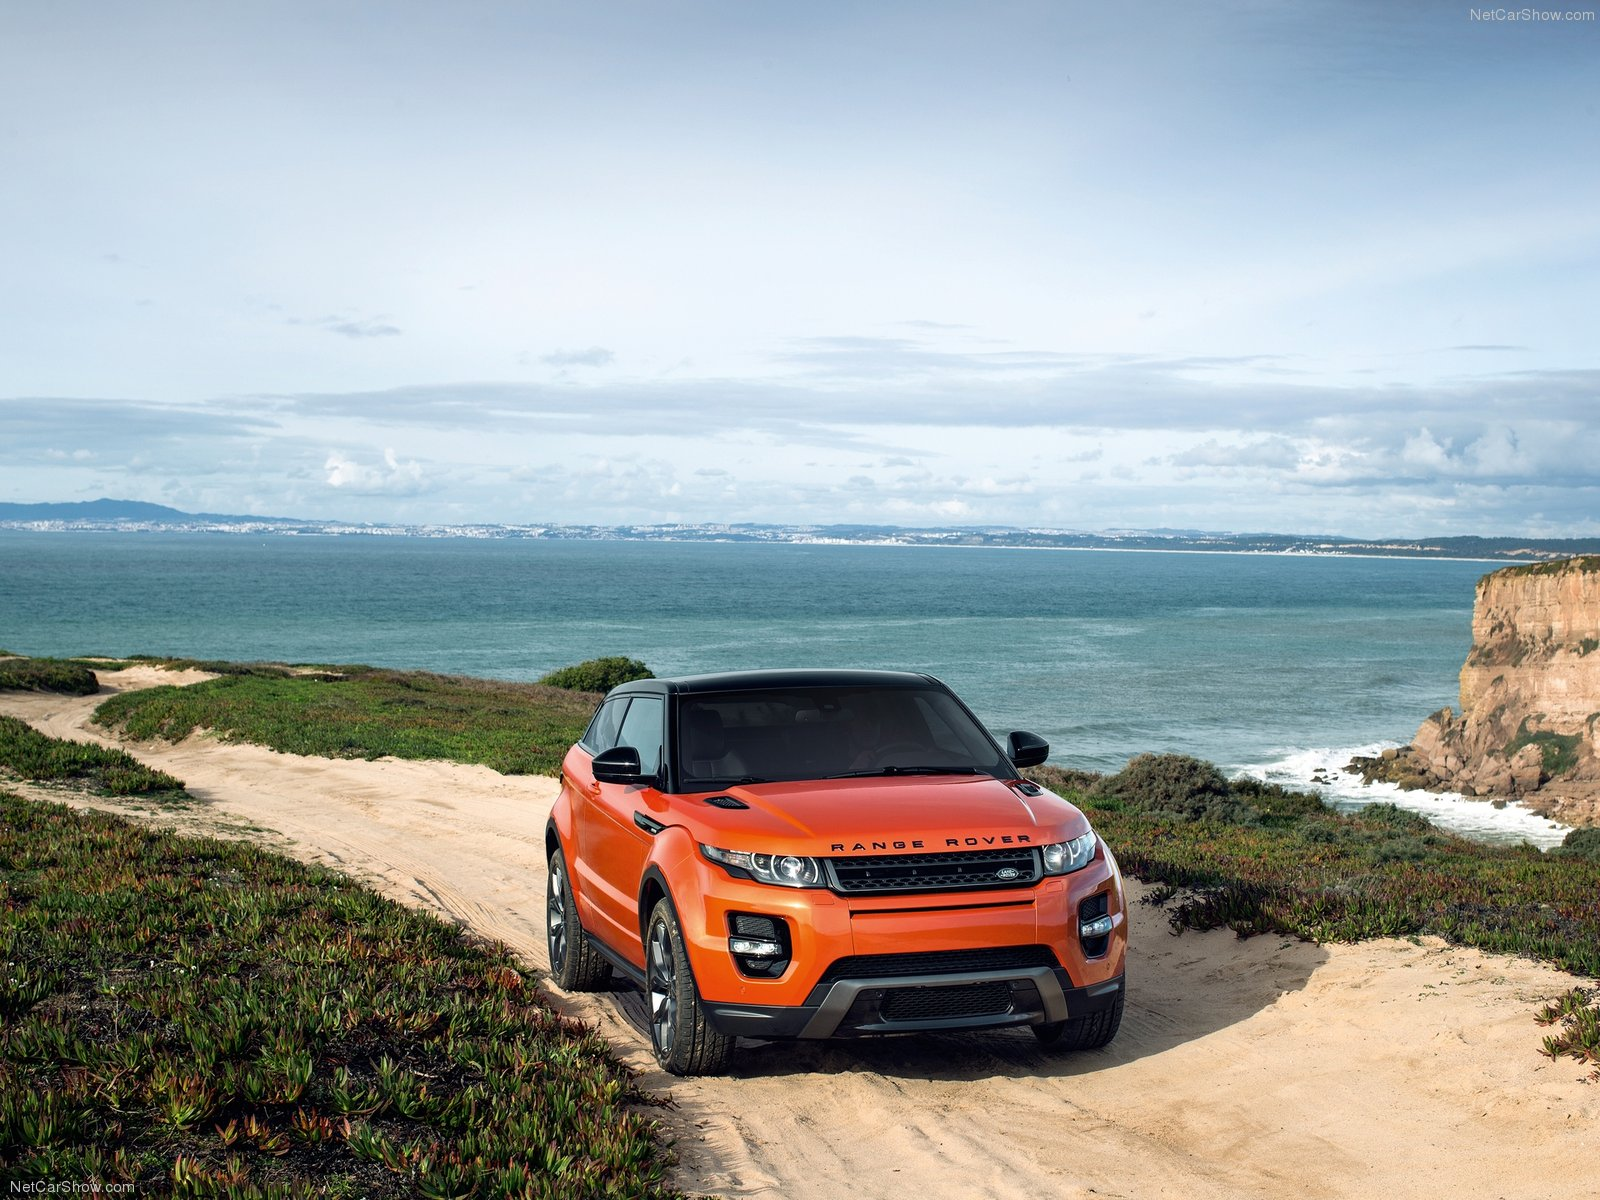 Land Rover Range Rover Evoque Autobiography Dynamic picture # 110456 ...